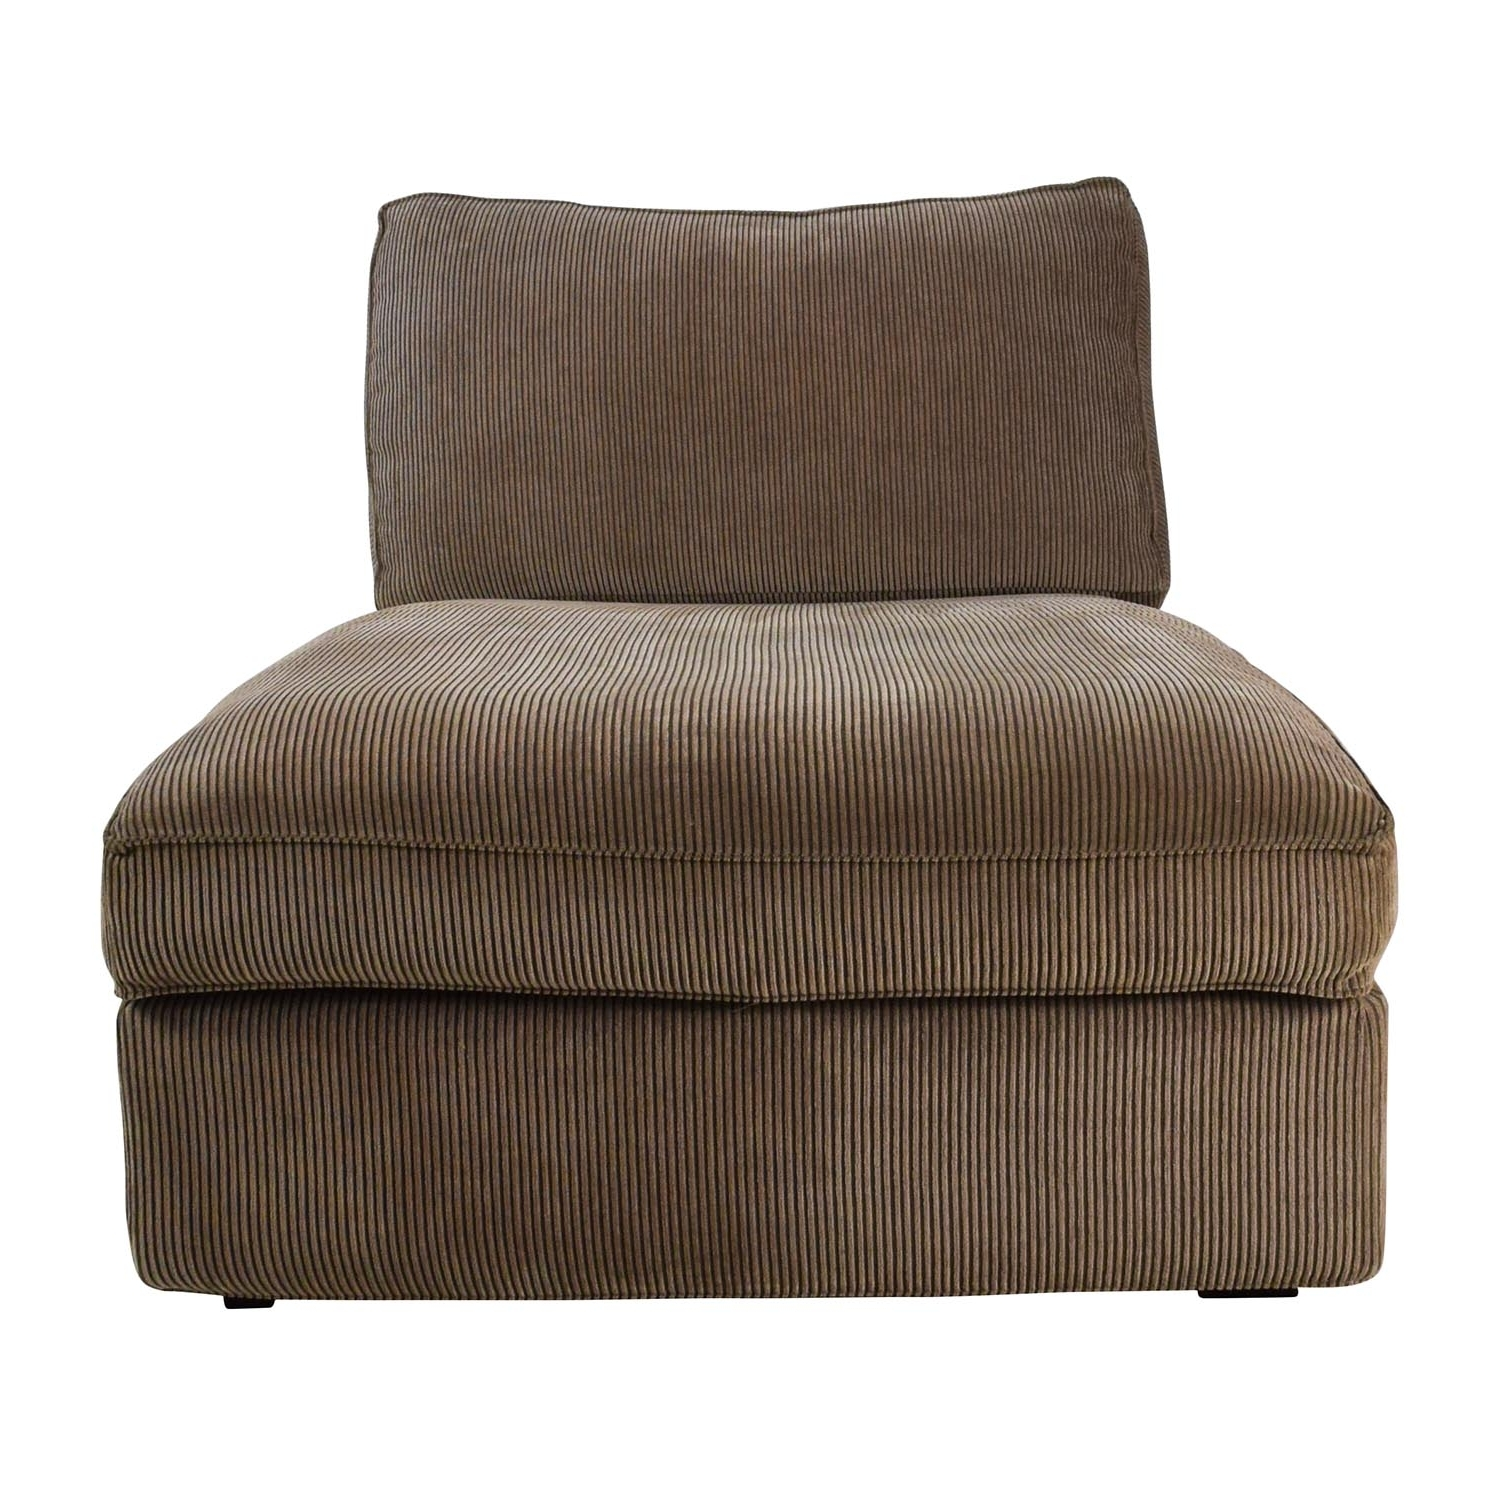 [%83% Off – Ikea Ikea Kivik Chaise Lounge / Sofas With Regard To Current Ikea Chaise Lounges|Ikea Chaise Lounges In Most Recently Released 83% Off – Ikea Ikea Kivik Chaise Lounge / Sofas|Most Recently Released Ikea Chaise Lounges Intended For 83% Off – Ikea Ikea Kivik Chaise Lounge / Sofas|Well Liked 83% Off – Ikea Ikea Kivik Chaise Lounge / Sofas Intended For Ikea Chaise Lounges%] (View 10 of 15)